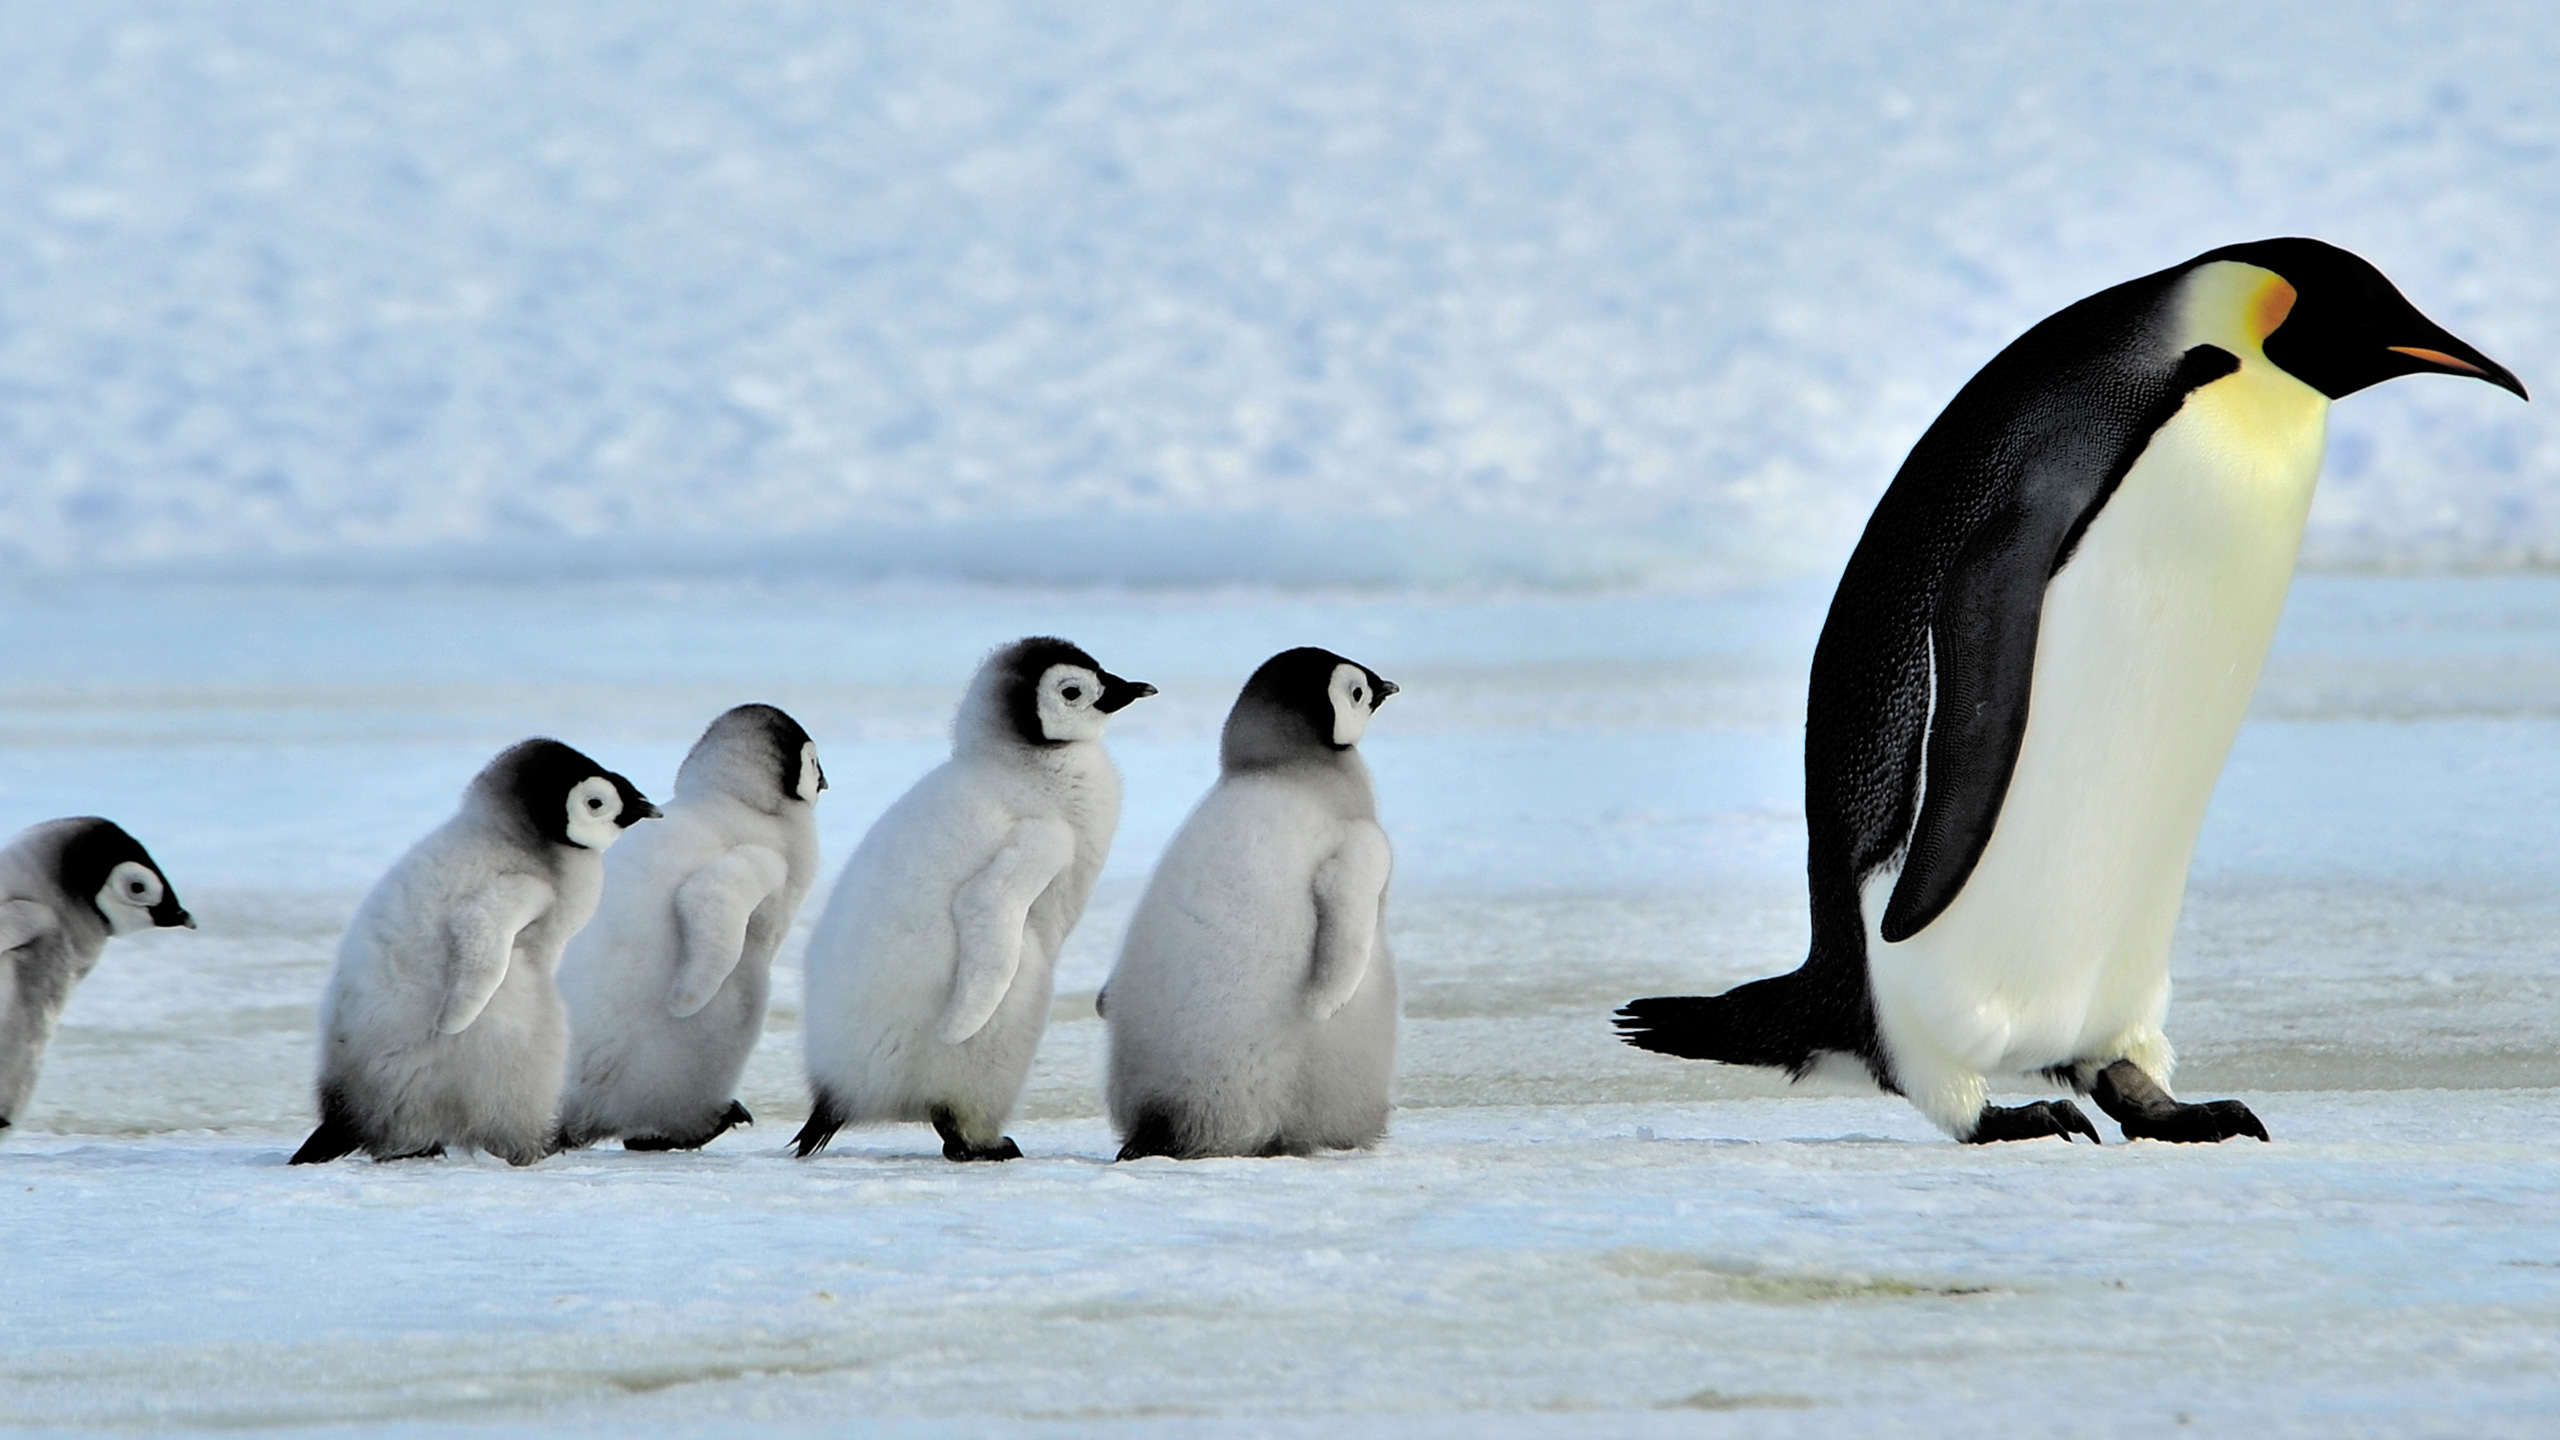 emperor penguins essay Climate change threatens penguins shaye wolf  emperor penguins can dive to depths of more than 520 m to find food—deeper than any other bird.